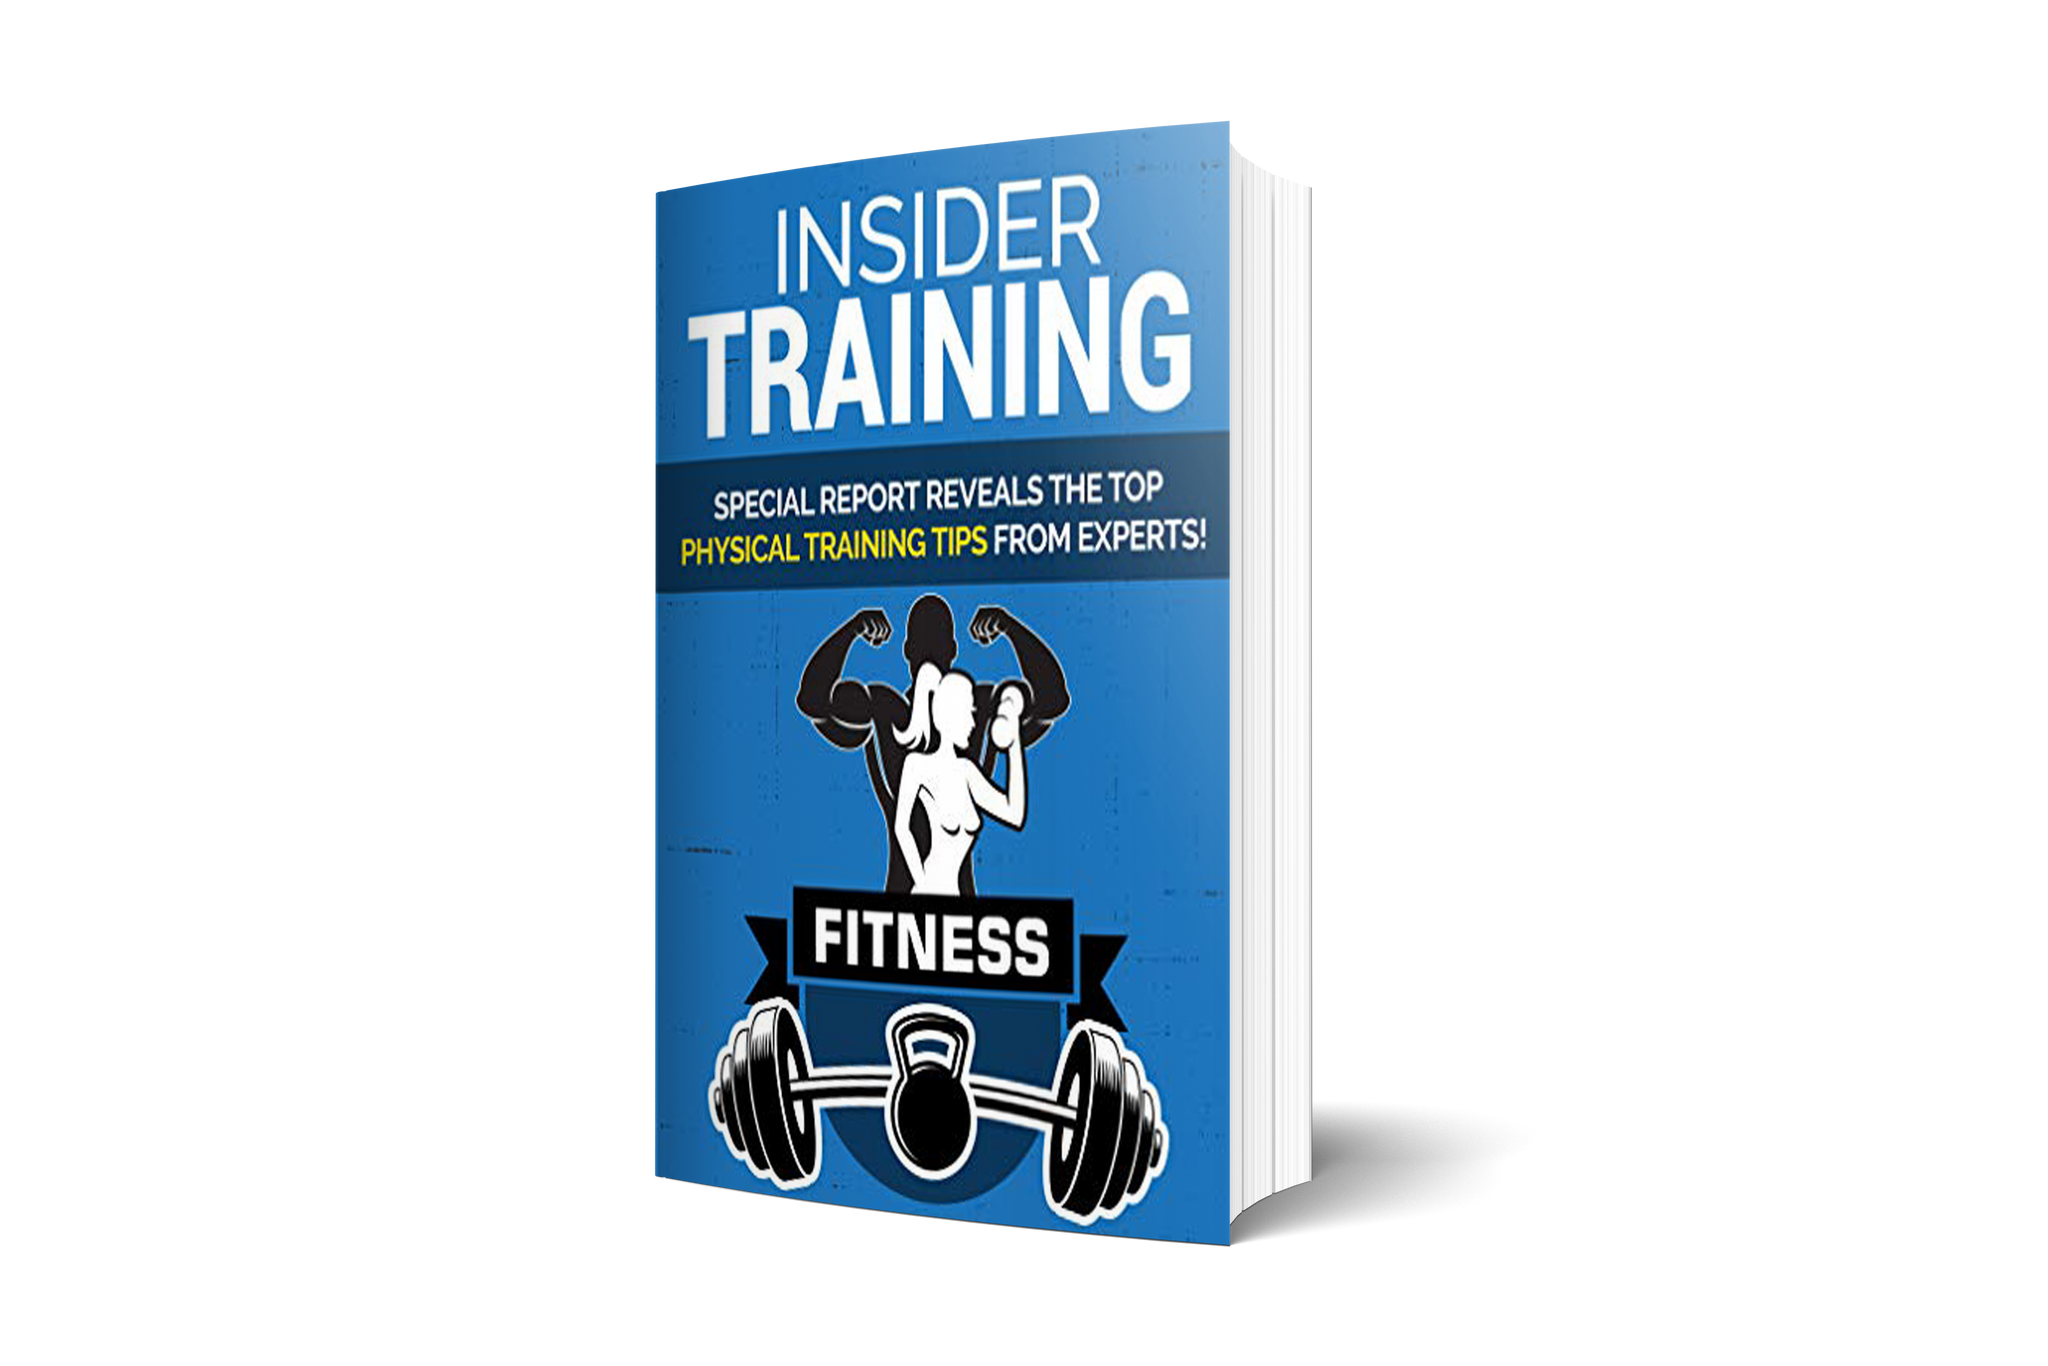 Insider Training – Special Report Reveals The Top Physical Training Tips From Experts!